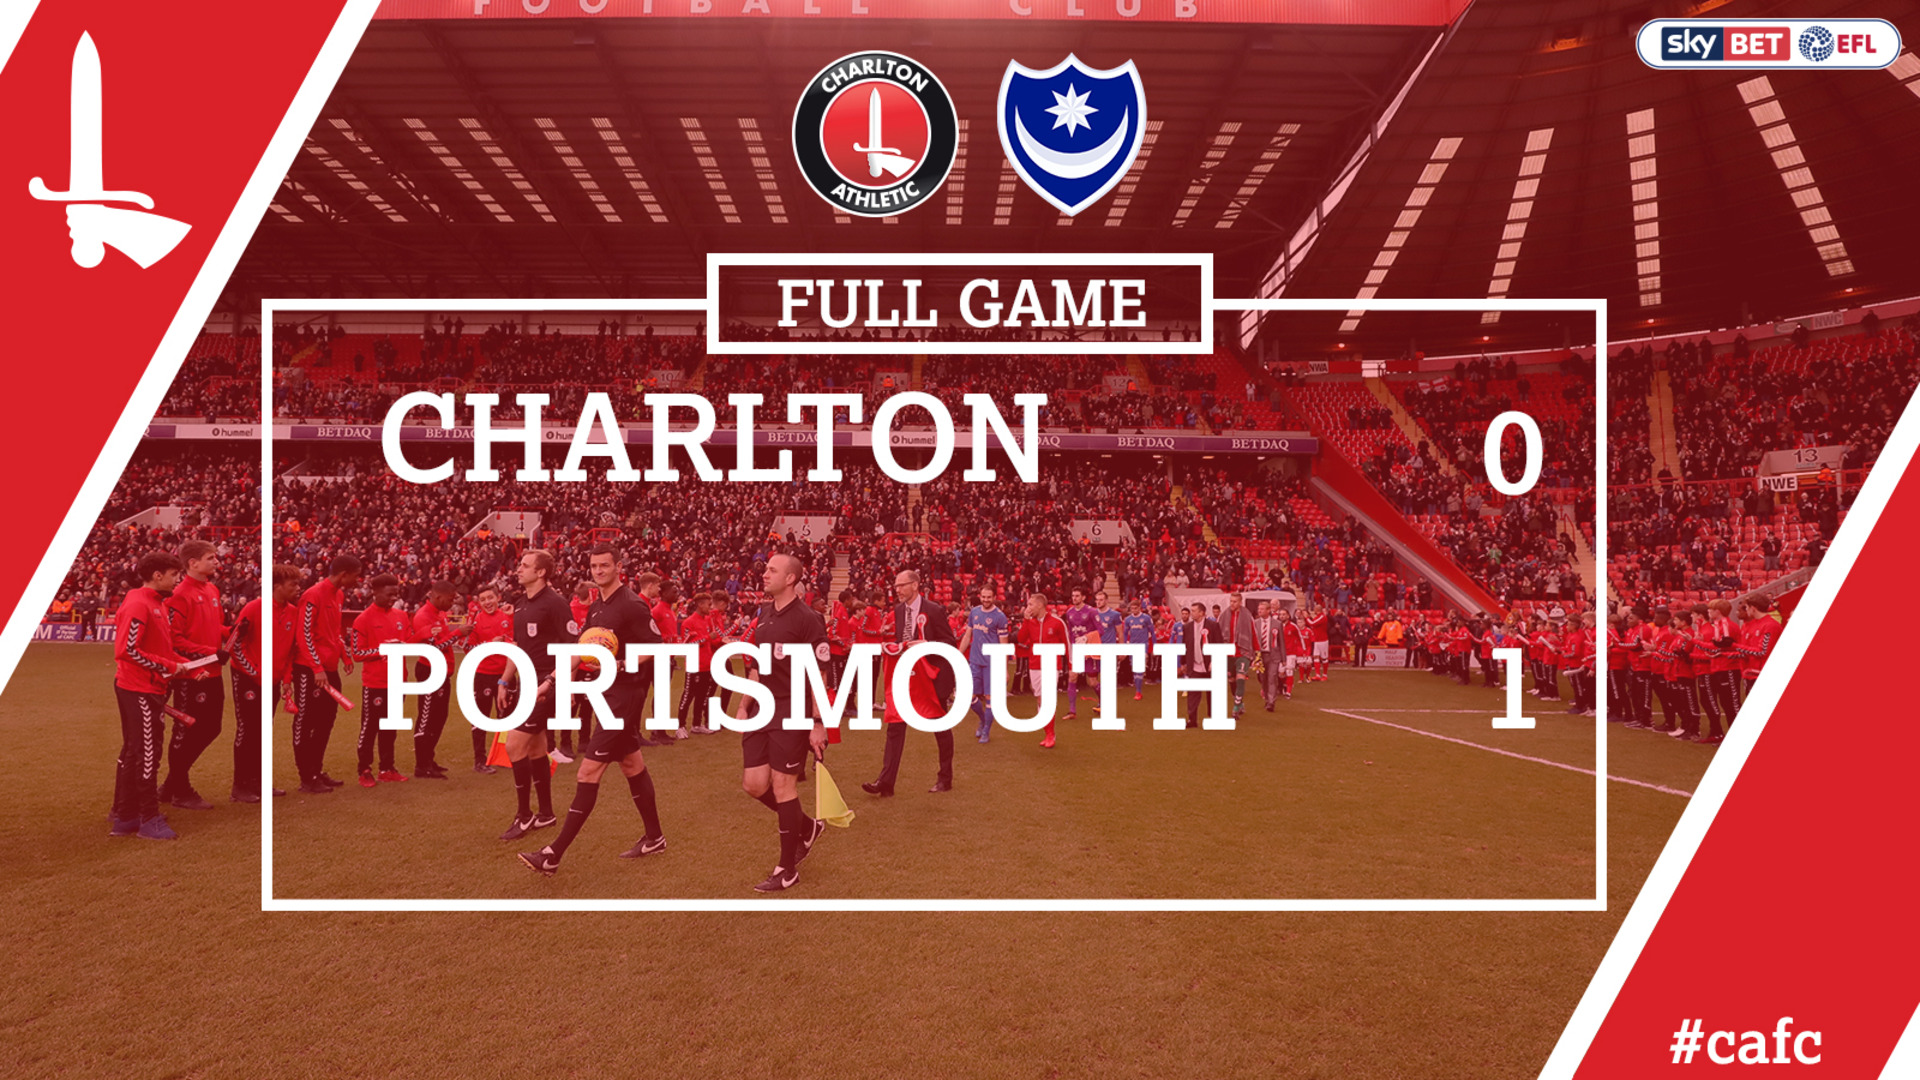 FULL GAME | Charlton 0 Portsmouth 1 (Dec 2017)